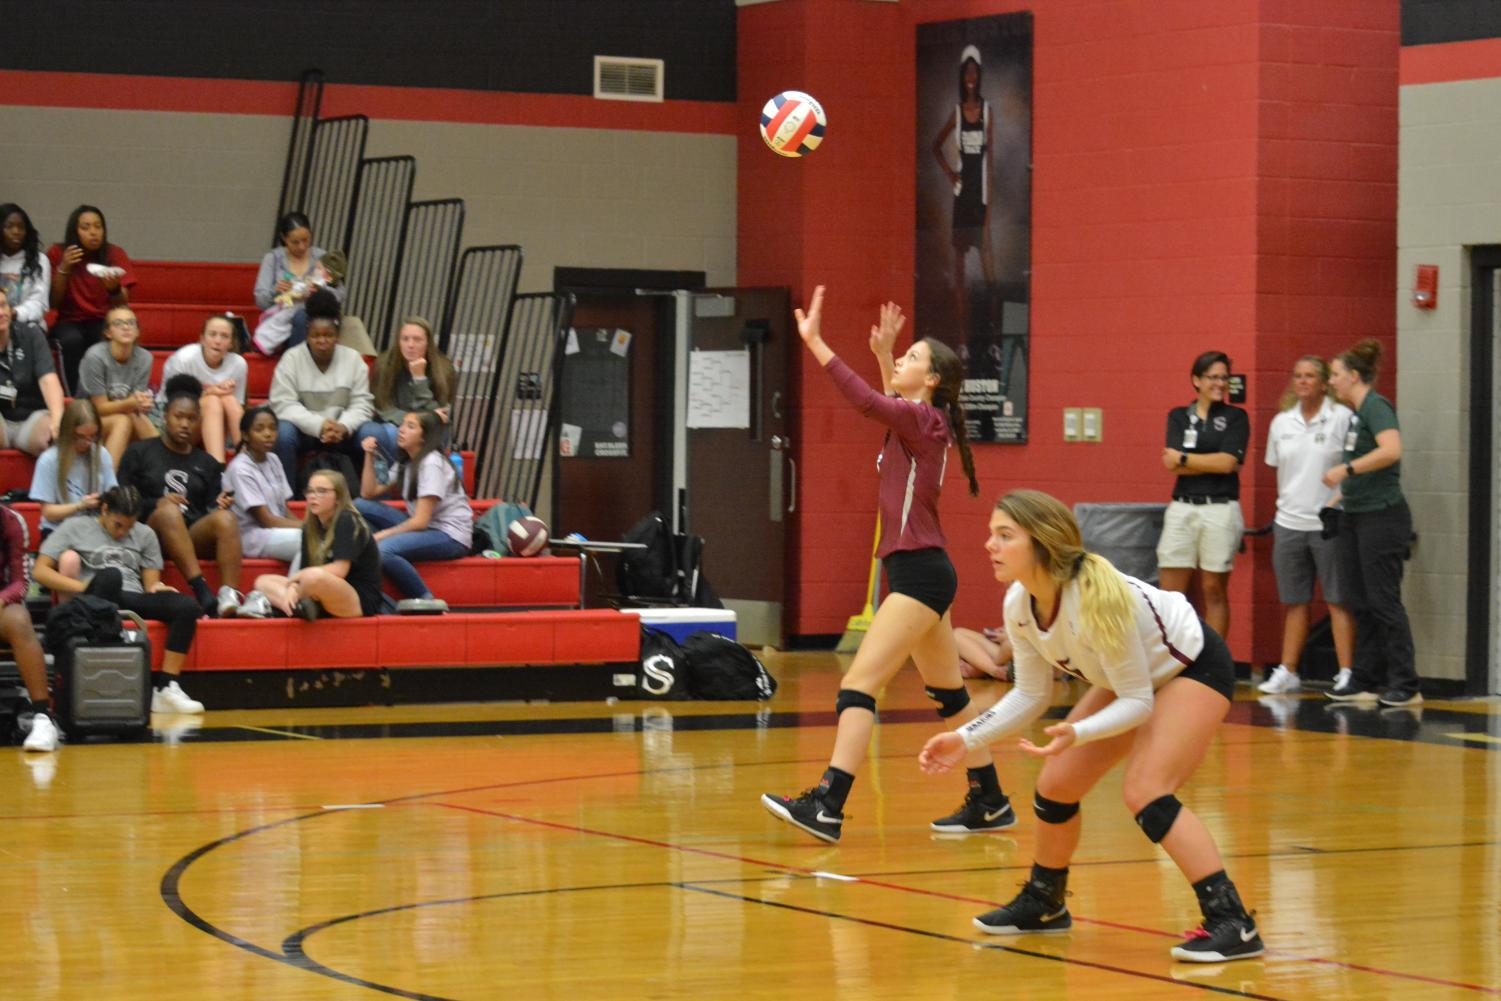 Serving the ball, junior Jessica Buford gets the match started. The team won the area title with a win over Huntsville.